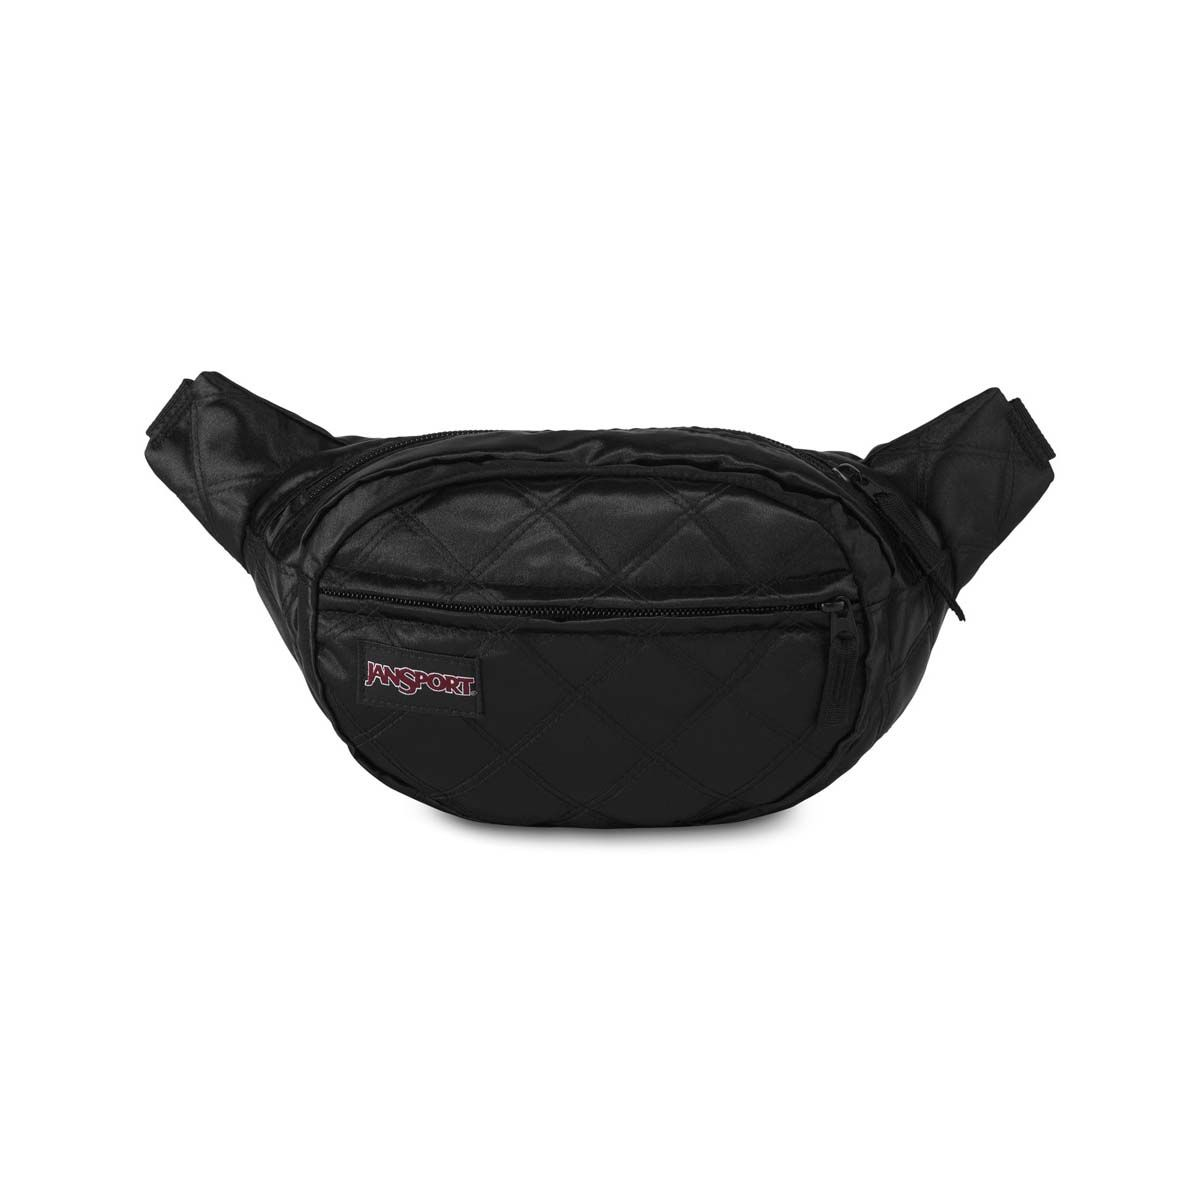 JanSport Fifth Ave FX Fanny Pack in Black Satin Diamond Quilting